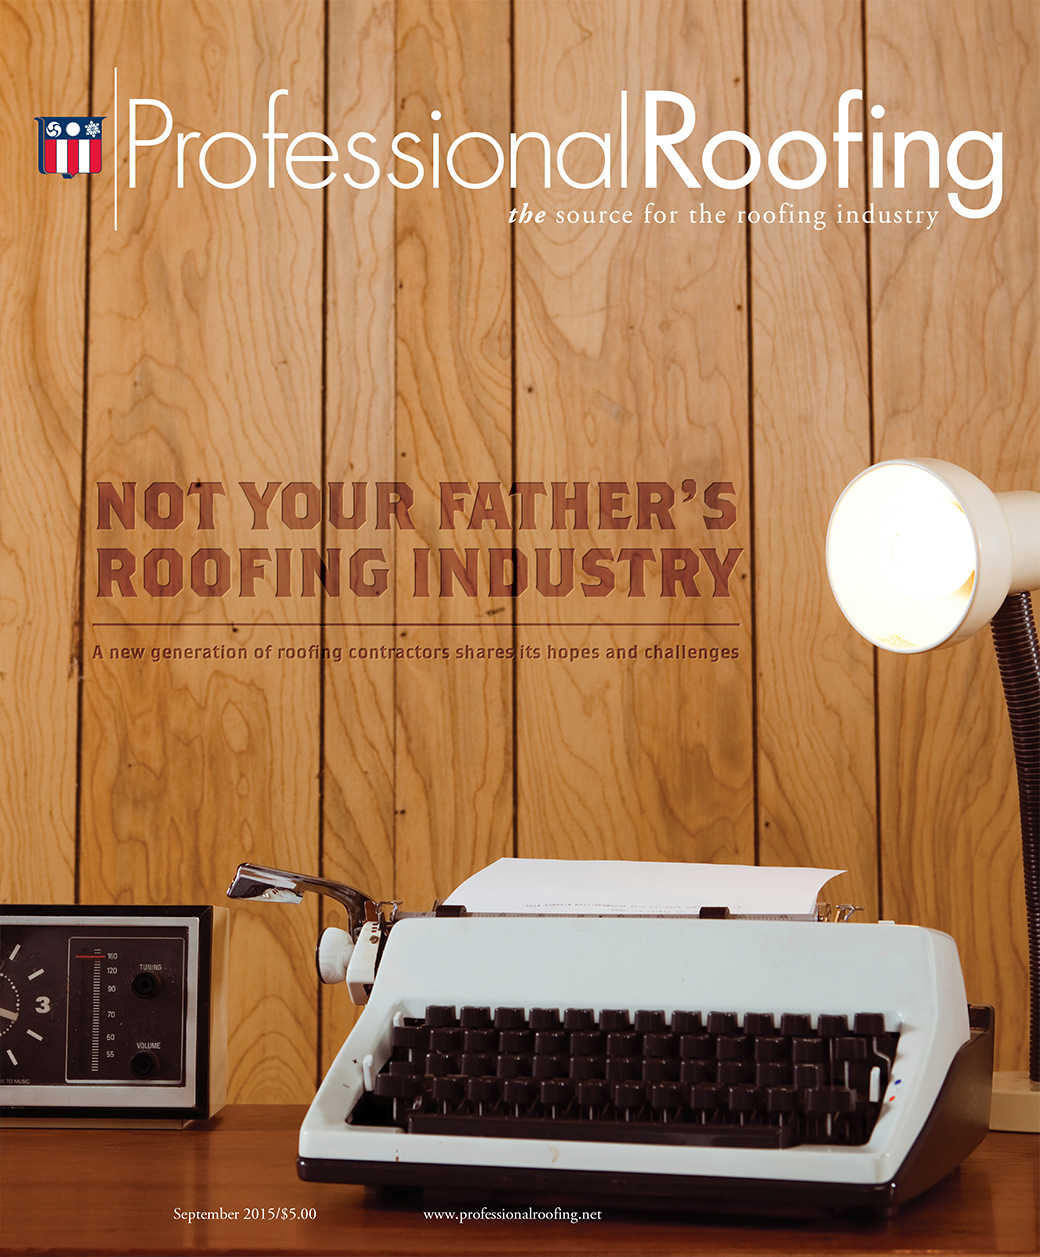 Professional Roofing Magazine 9/1/2015